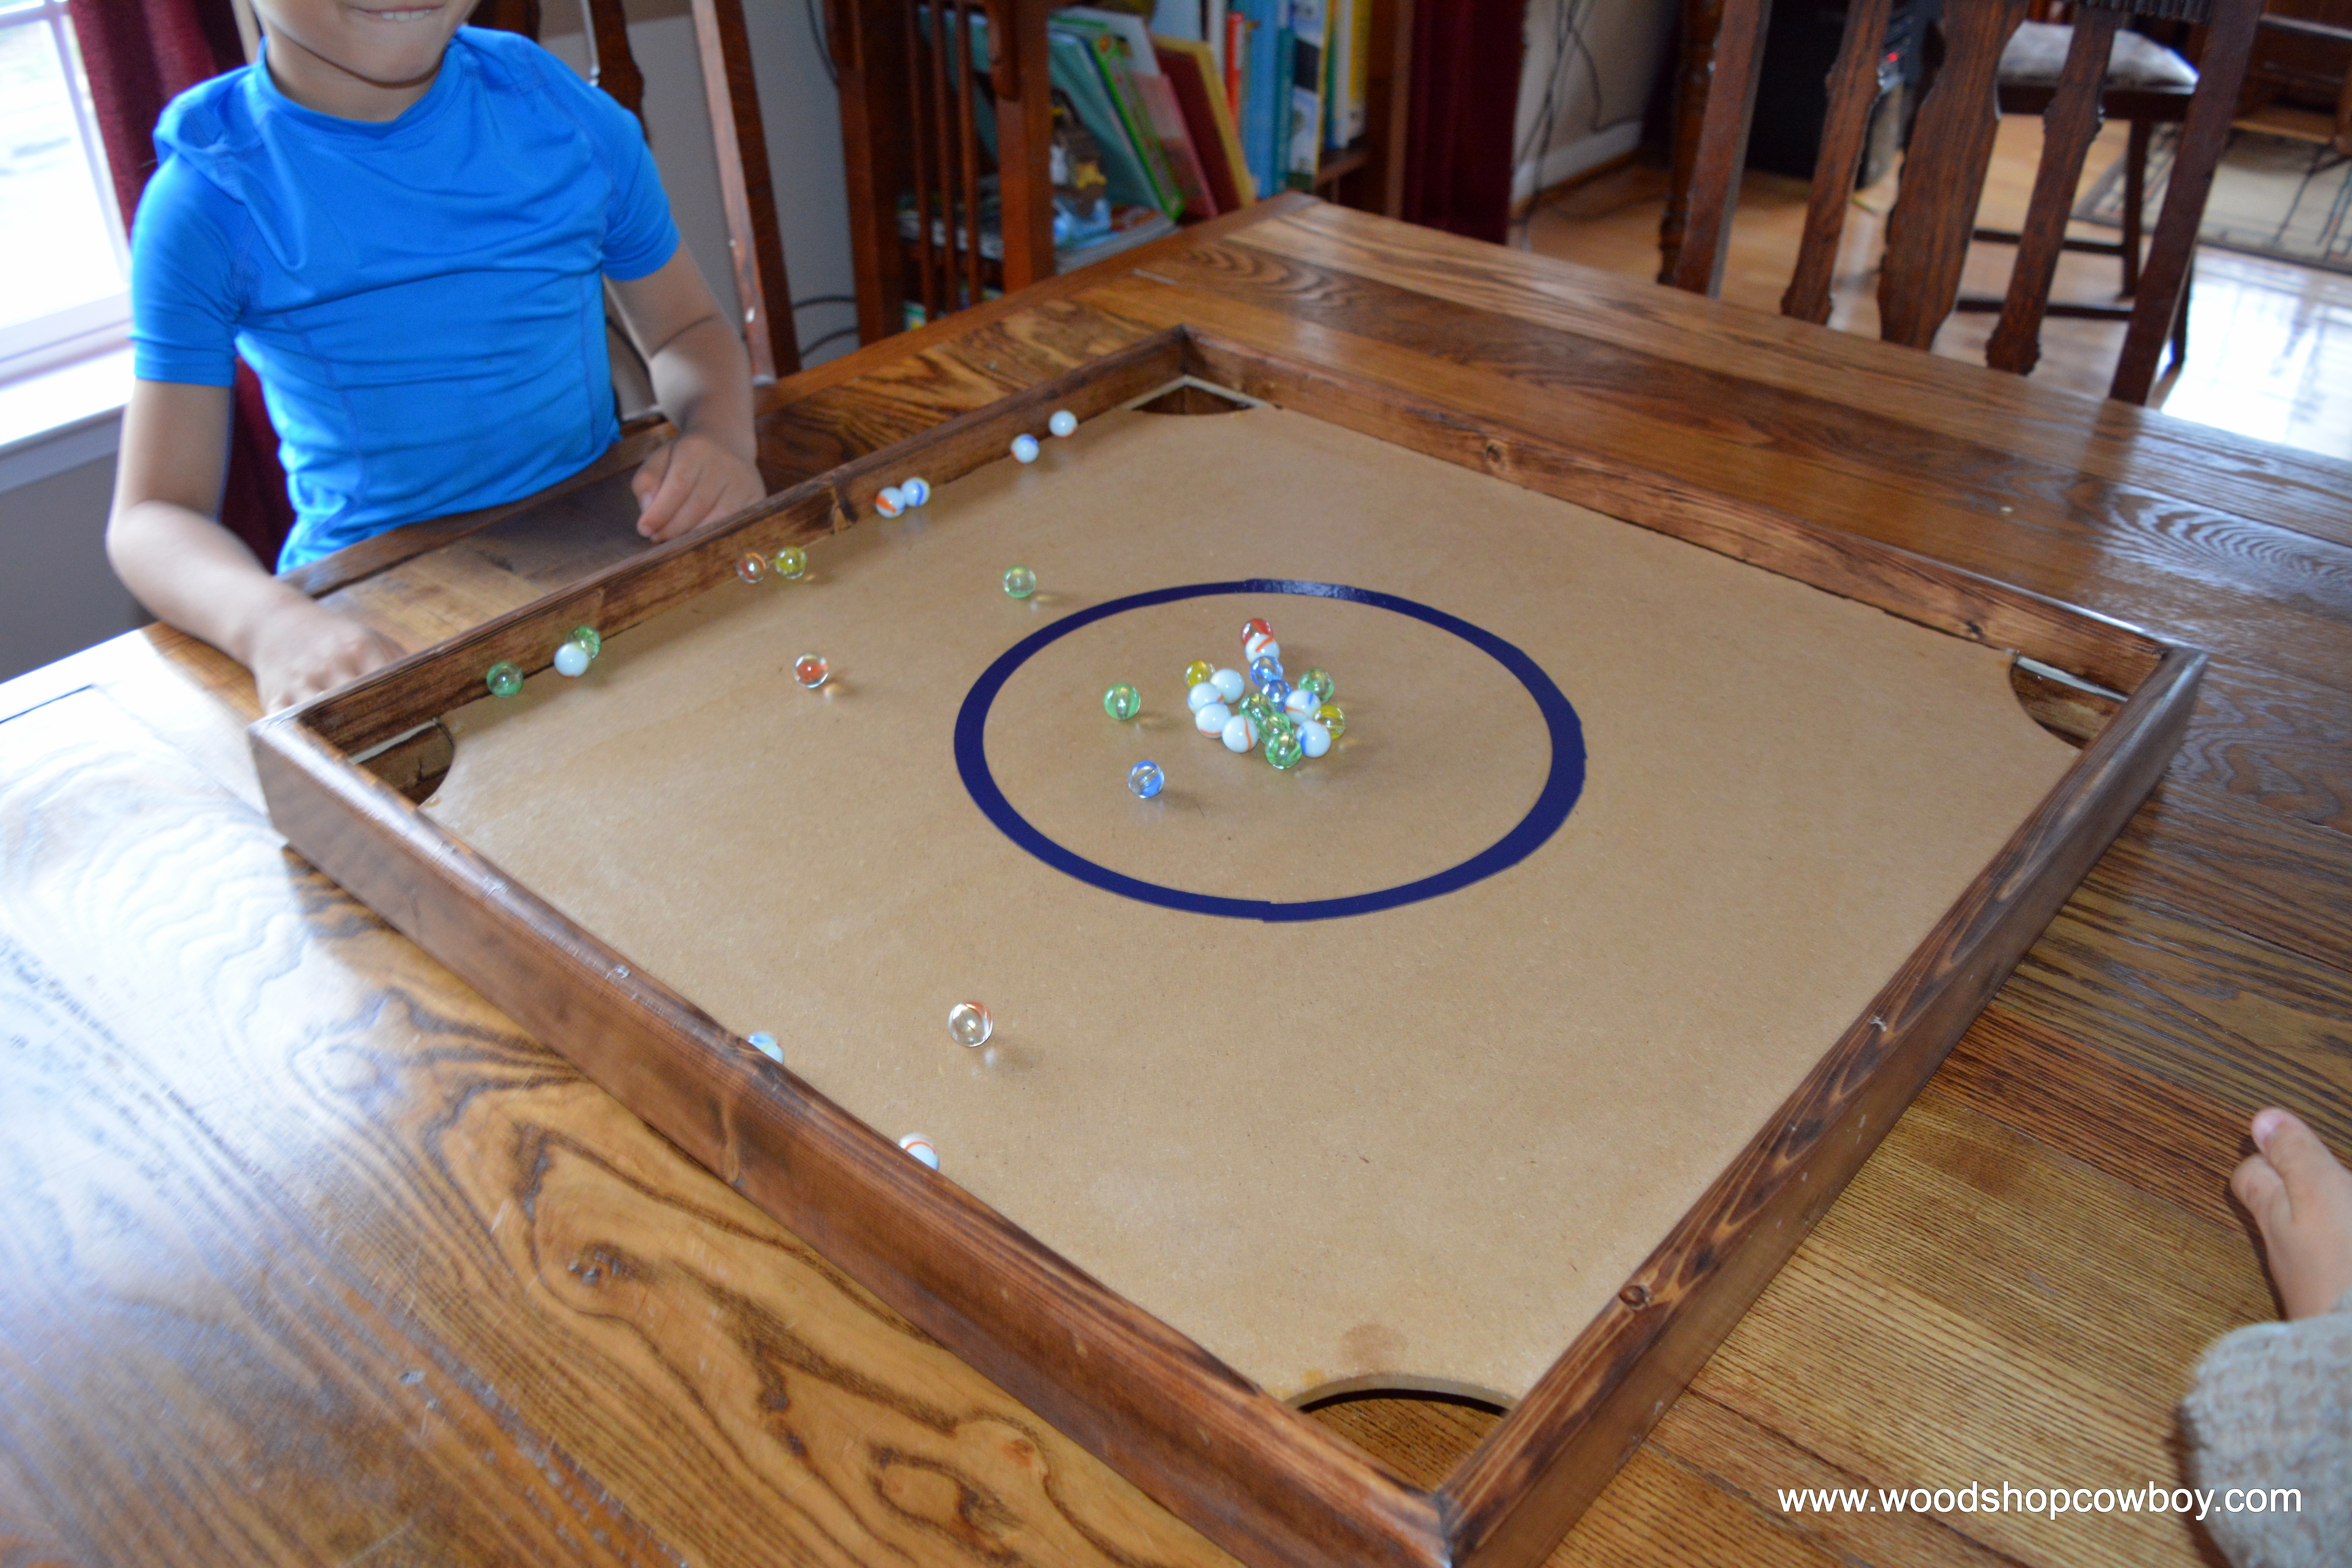 Home Makerspace A Diy Carrom Or Marbles Game Board Woodshopcowboy